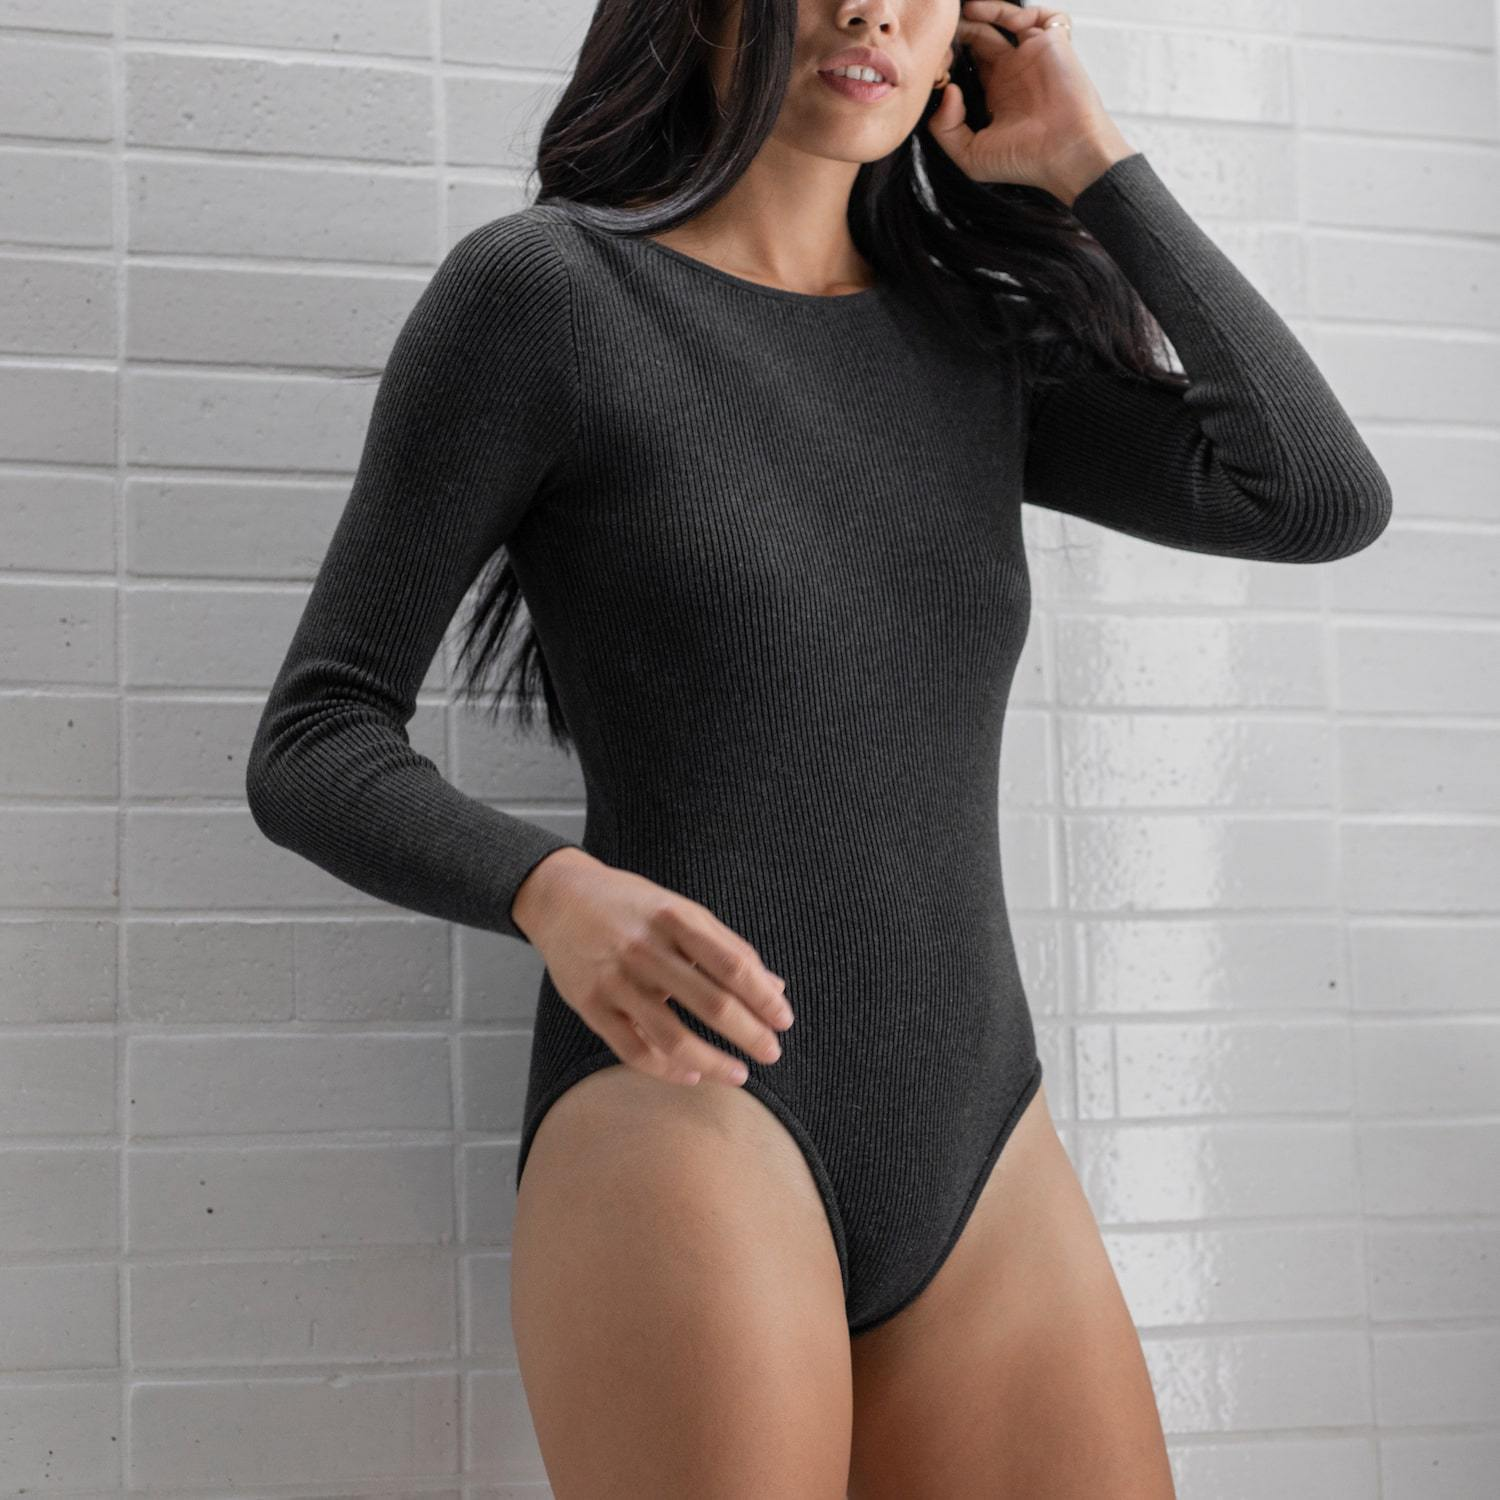 Lunya Sleepwear Cozy Pima Alpaca Ribbed Bodysuit - #Heather Charcoal